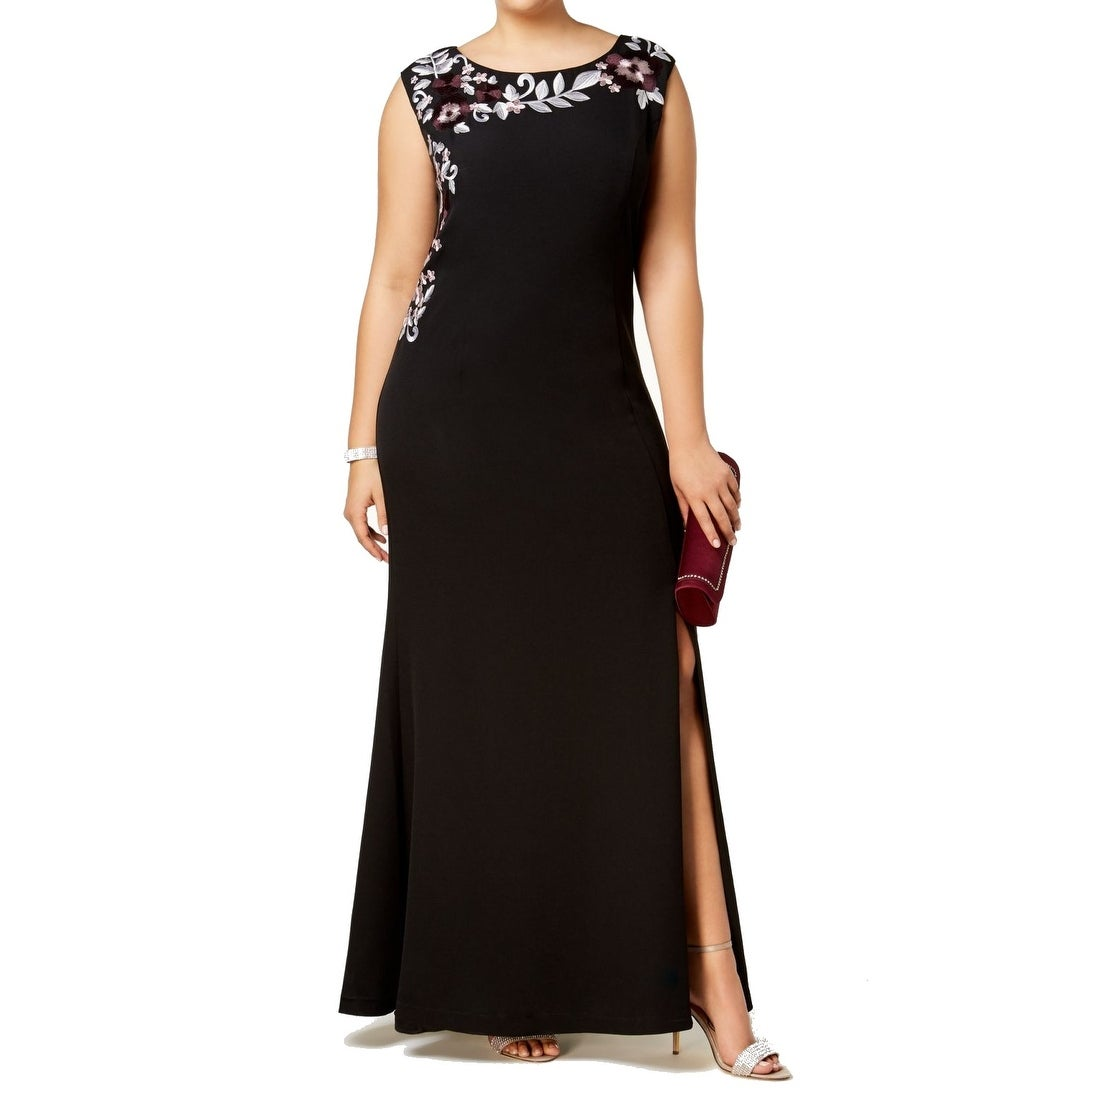 aed6cb8ccb2eb Shop SLNY Black Womens Size 14W Plus Embroidered Floral Gown Dress ...